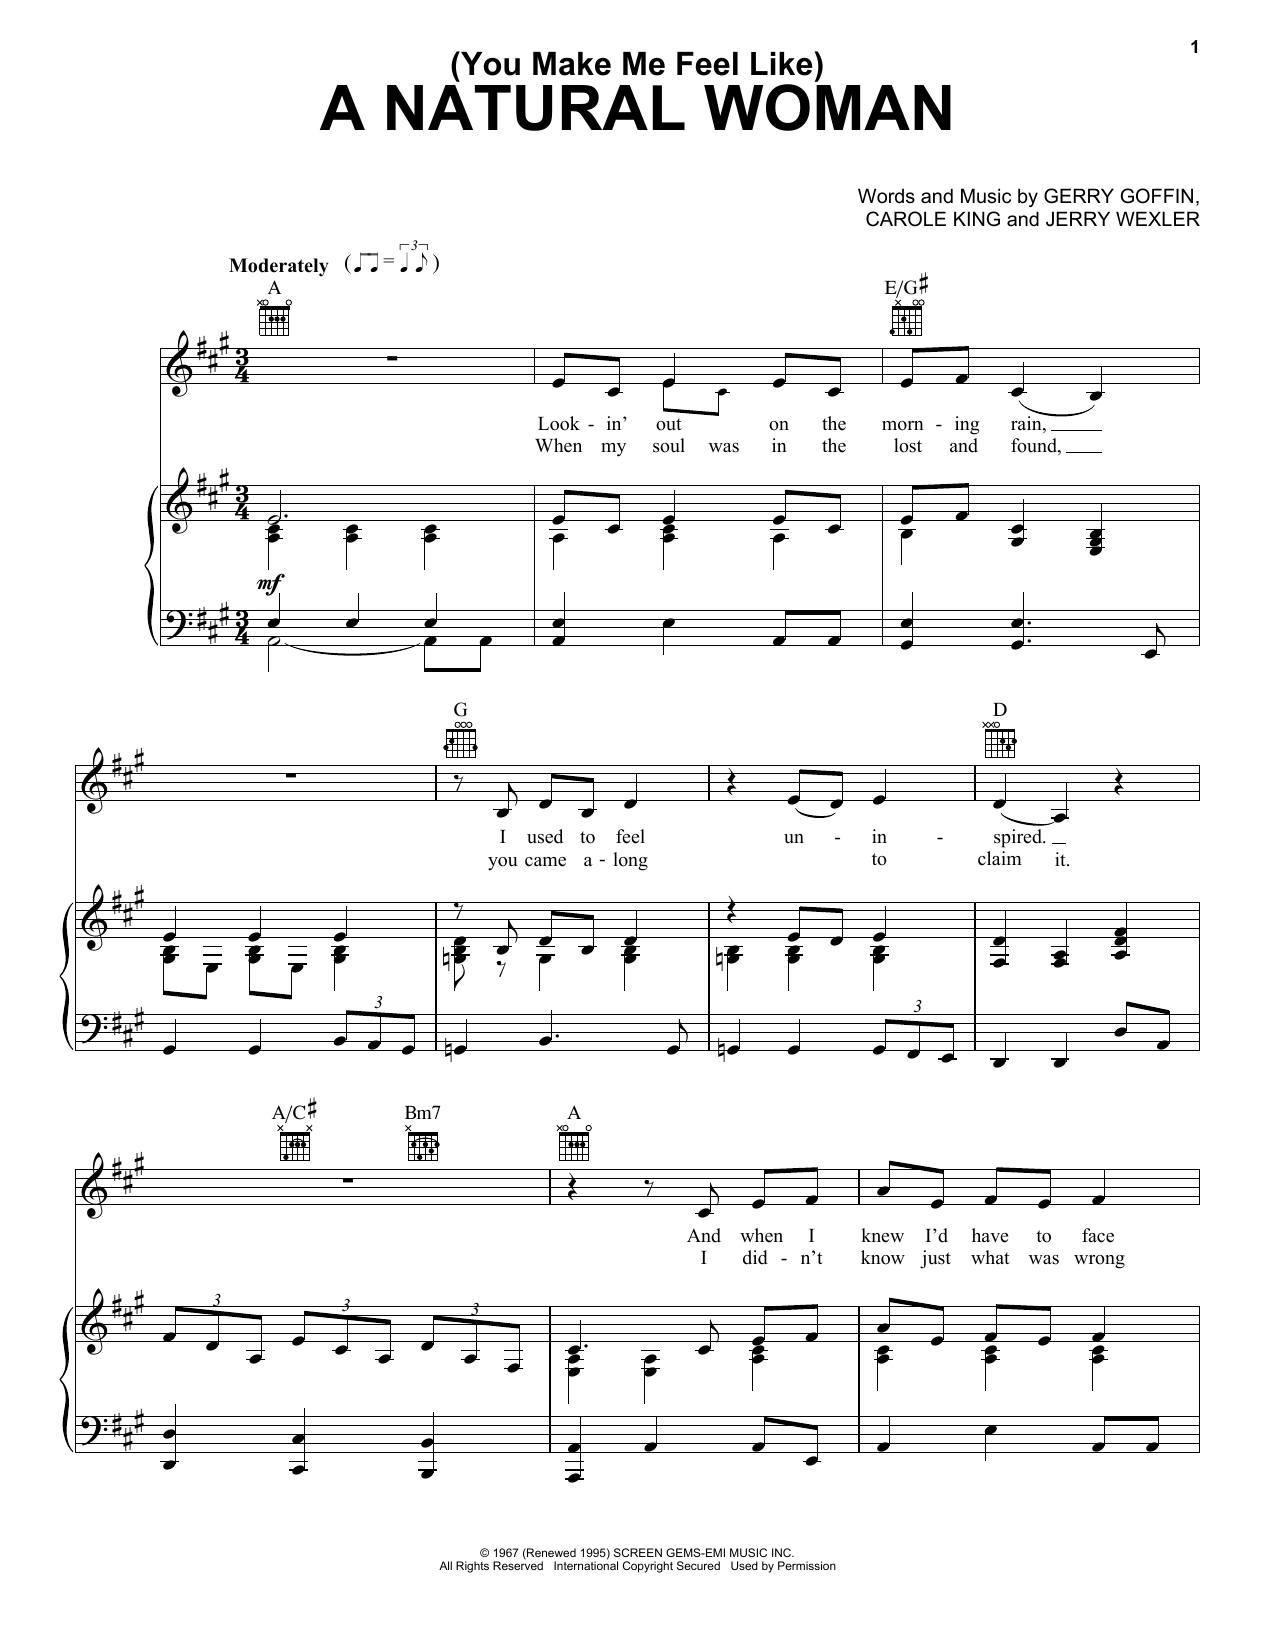 (You Make Me Feel Like) A Natural Woman sheet music for voice, piano or guitar by Jerry Wexler